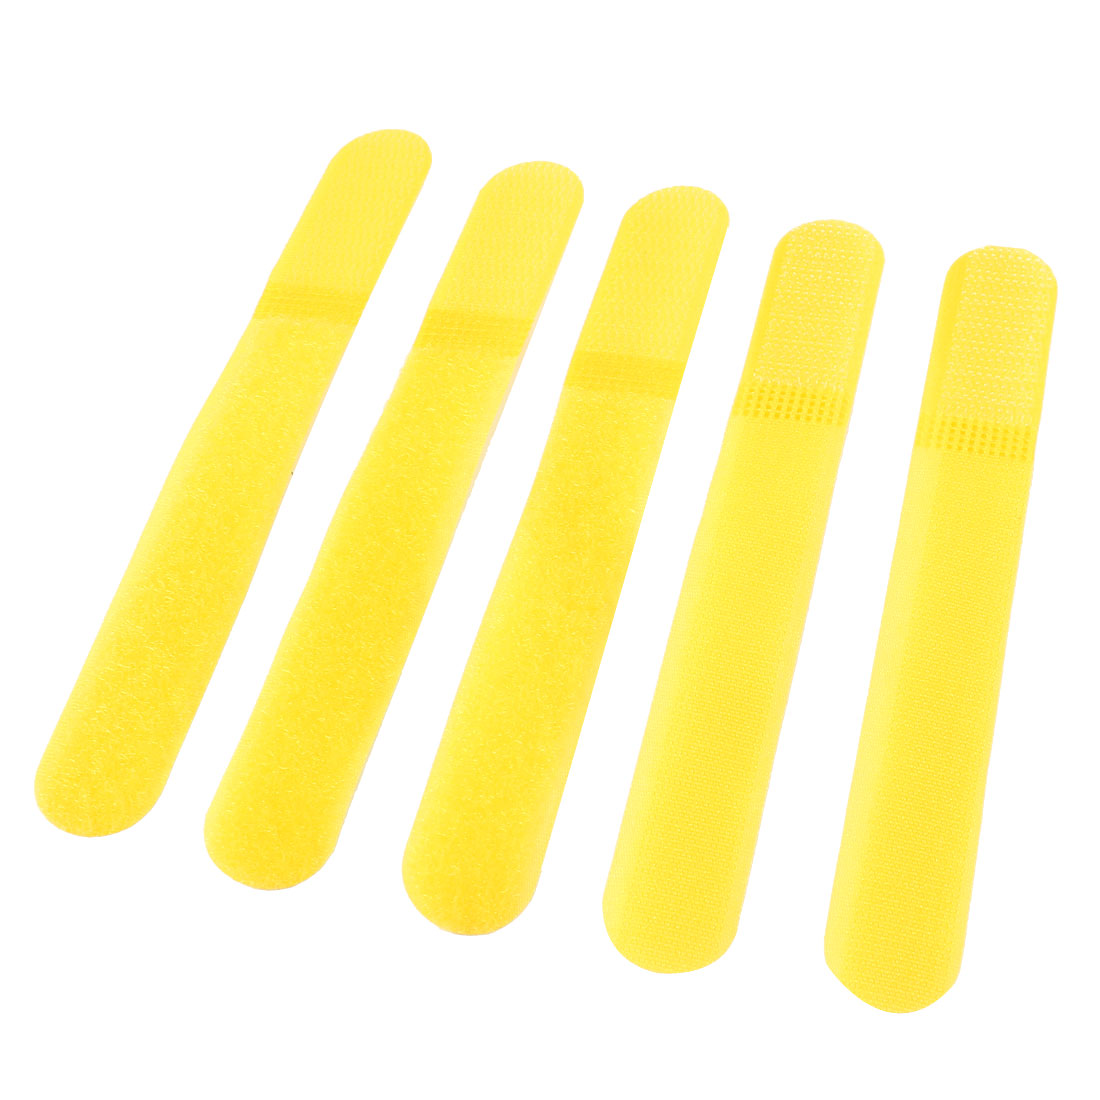 5 Pcs Detachable Fastener Hook Loop Tie Strap Cable Cord Organizer Yellow